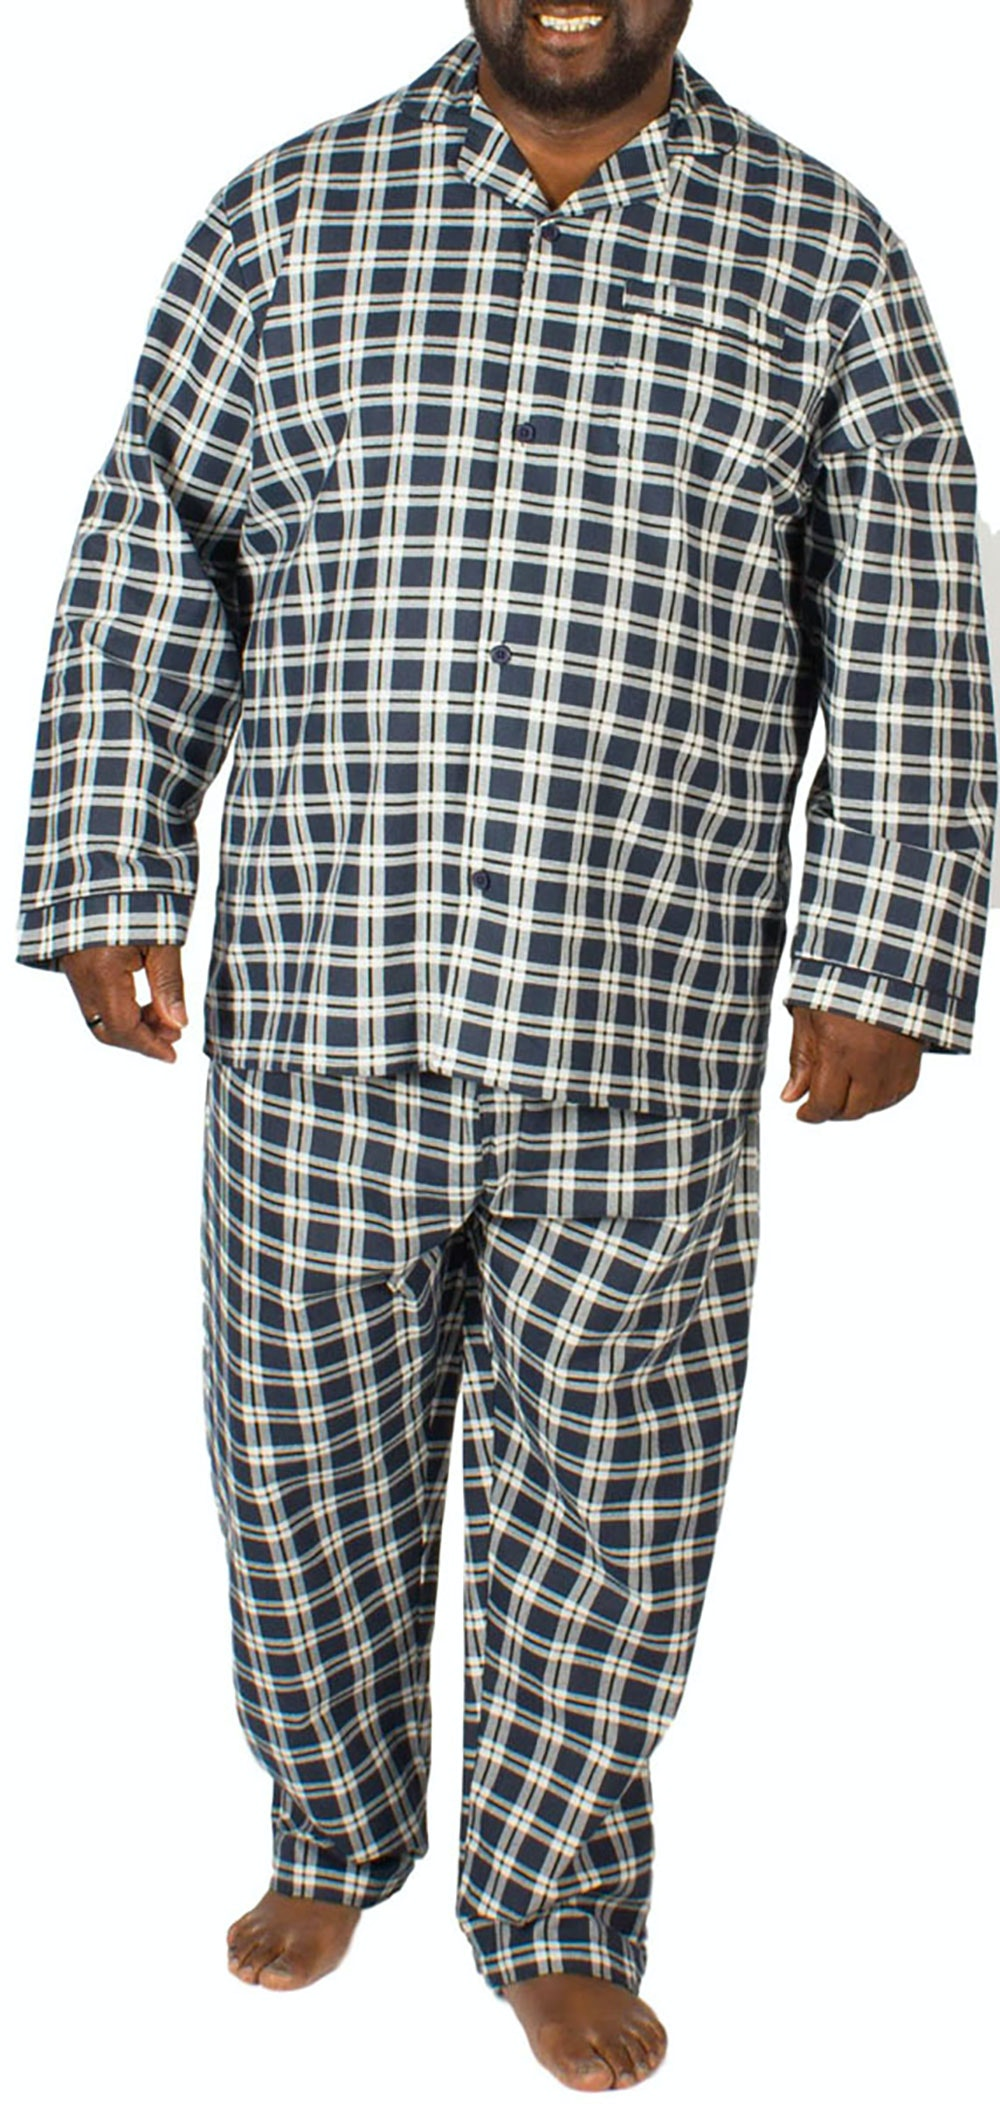 KAM Flannel Check Pyjama Set Navy